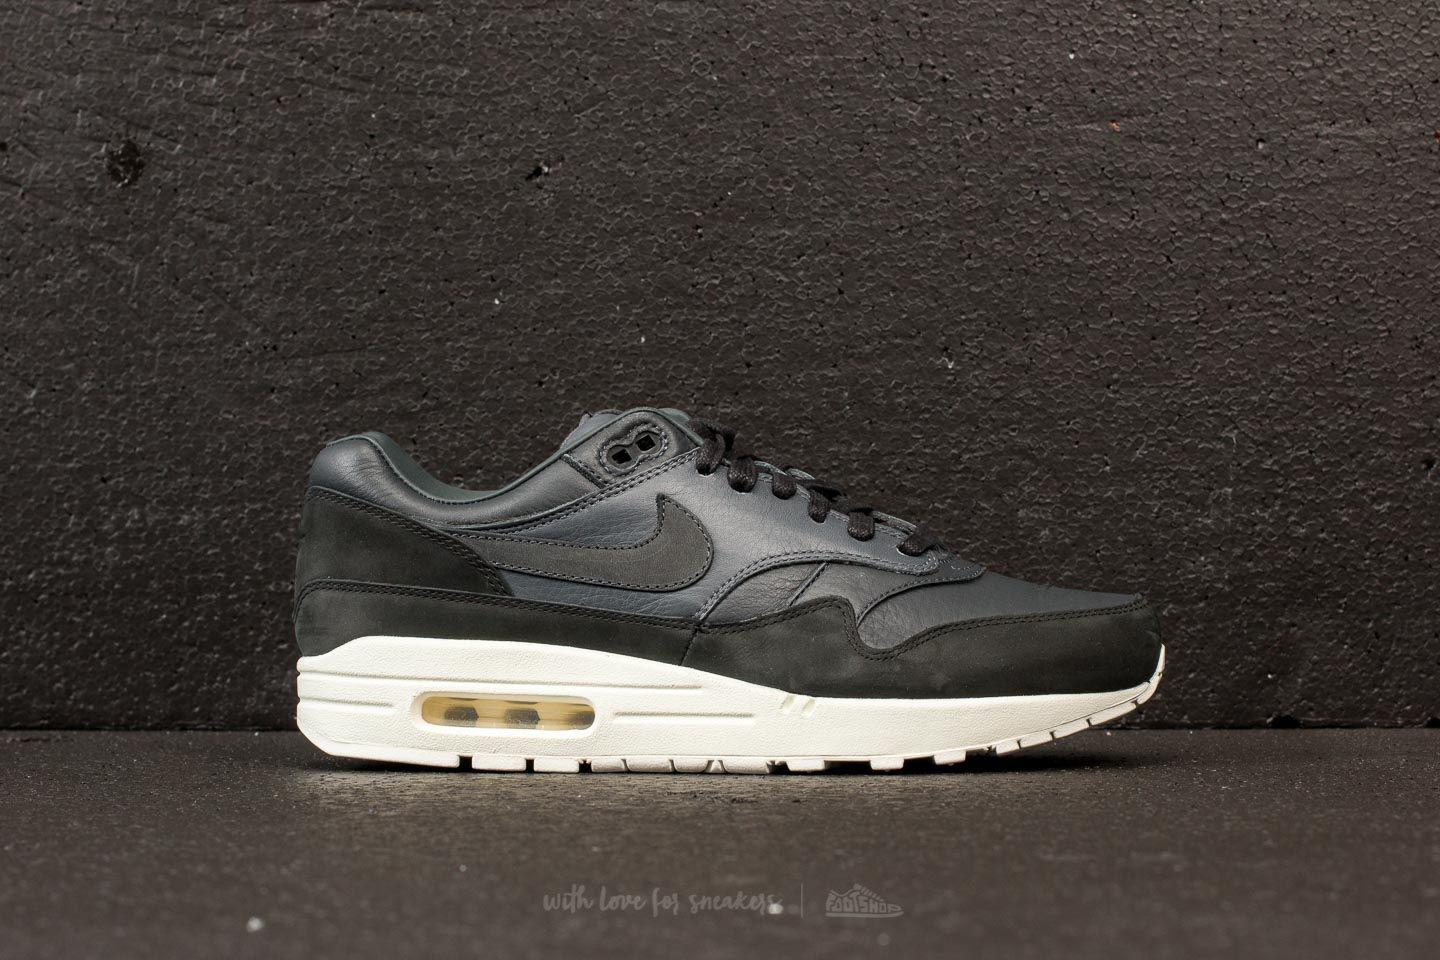 Lyst - Nike Lab Air Max 1 Pinnacle Black  Anthracite-dark Grey in ... e8e283087